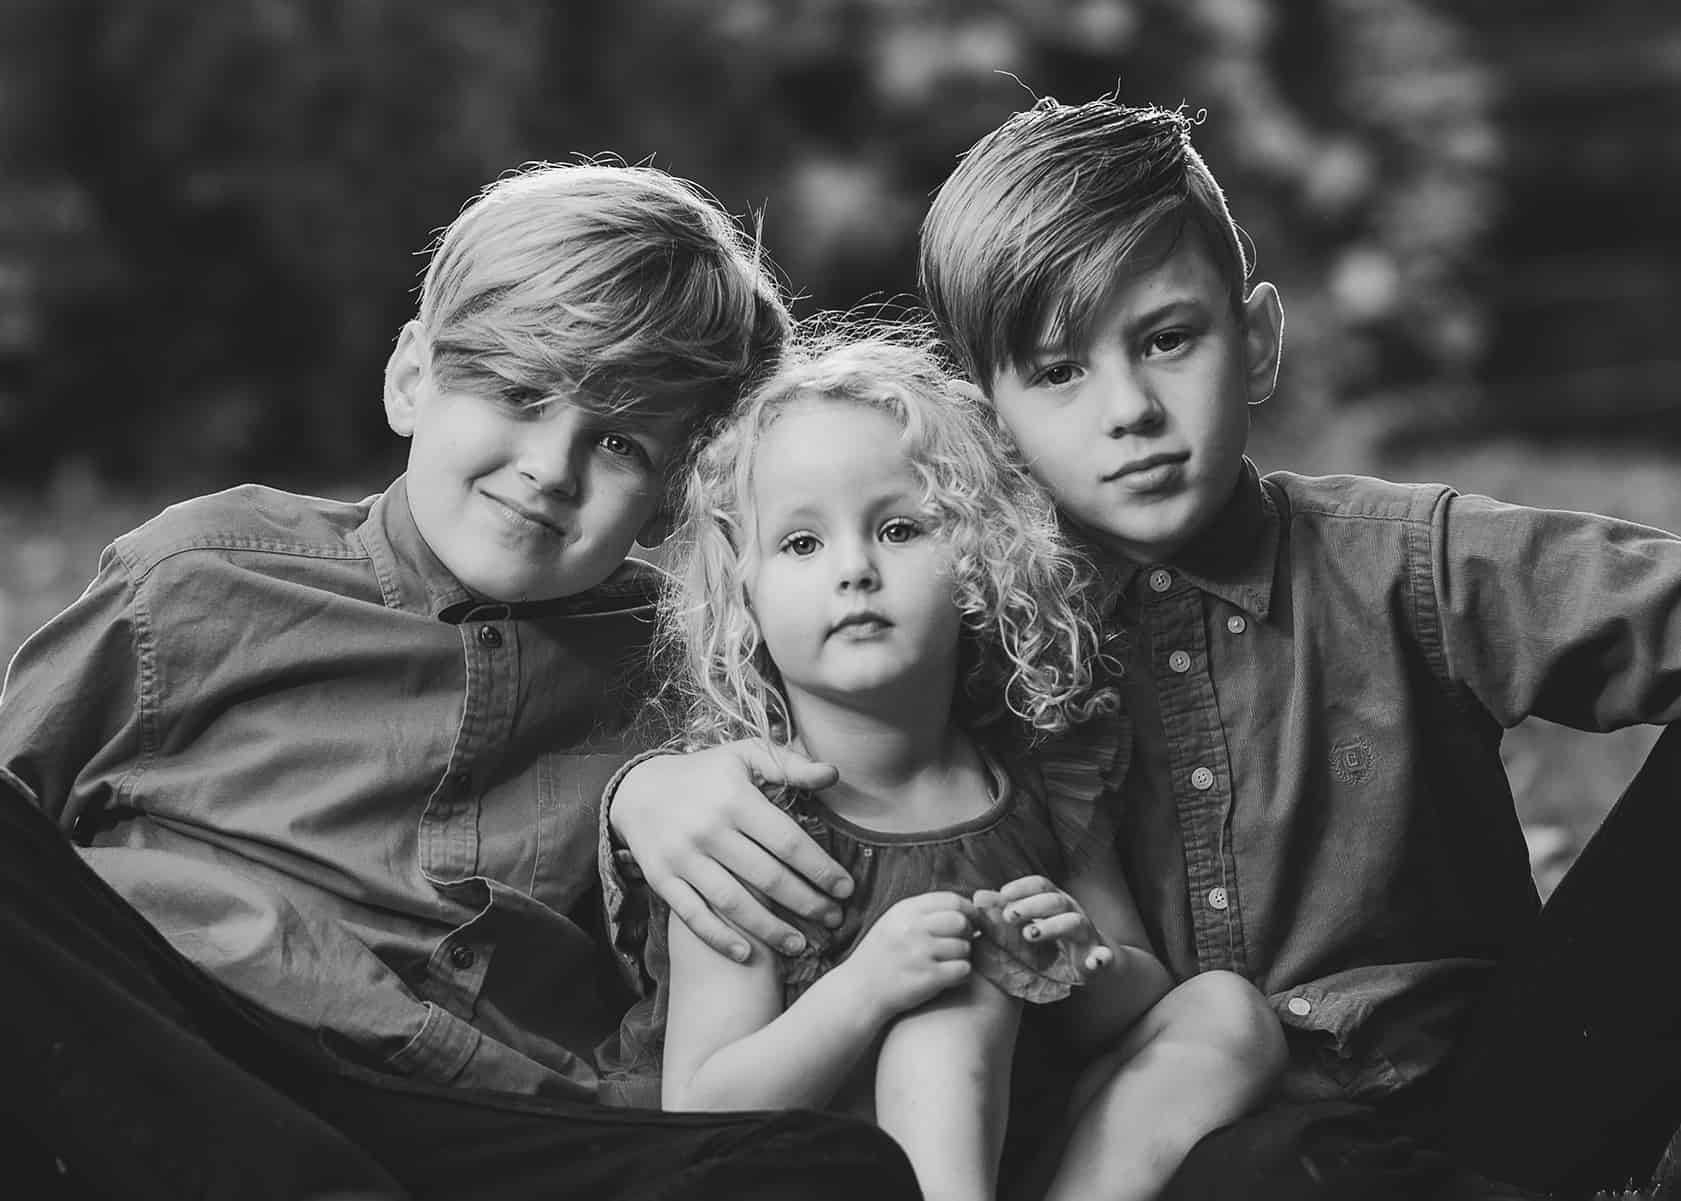 Siblings photoshoot black and white